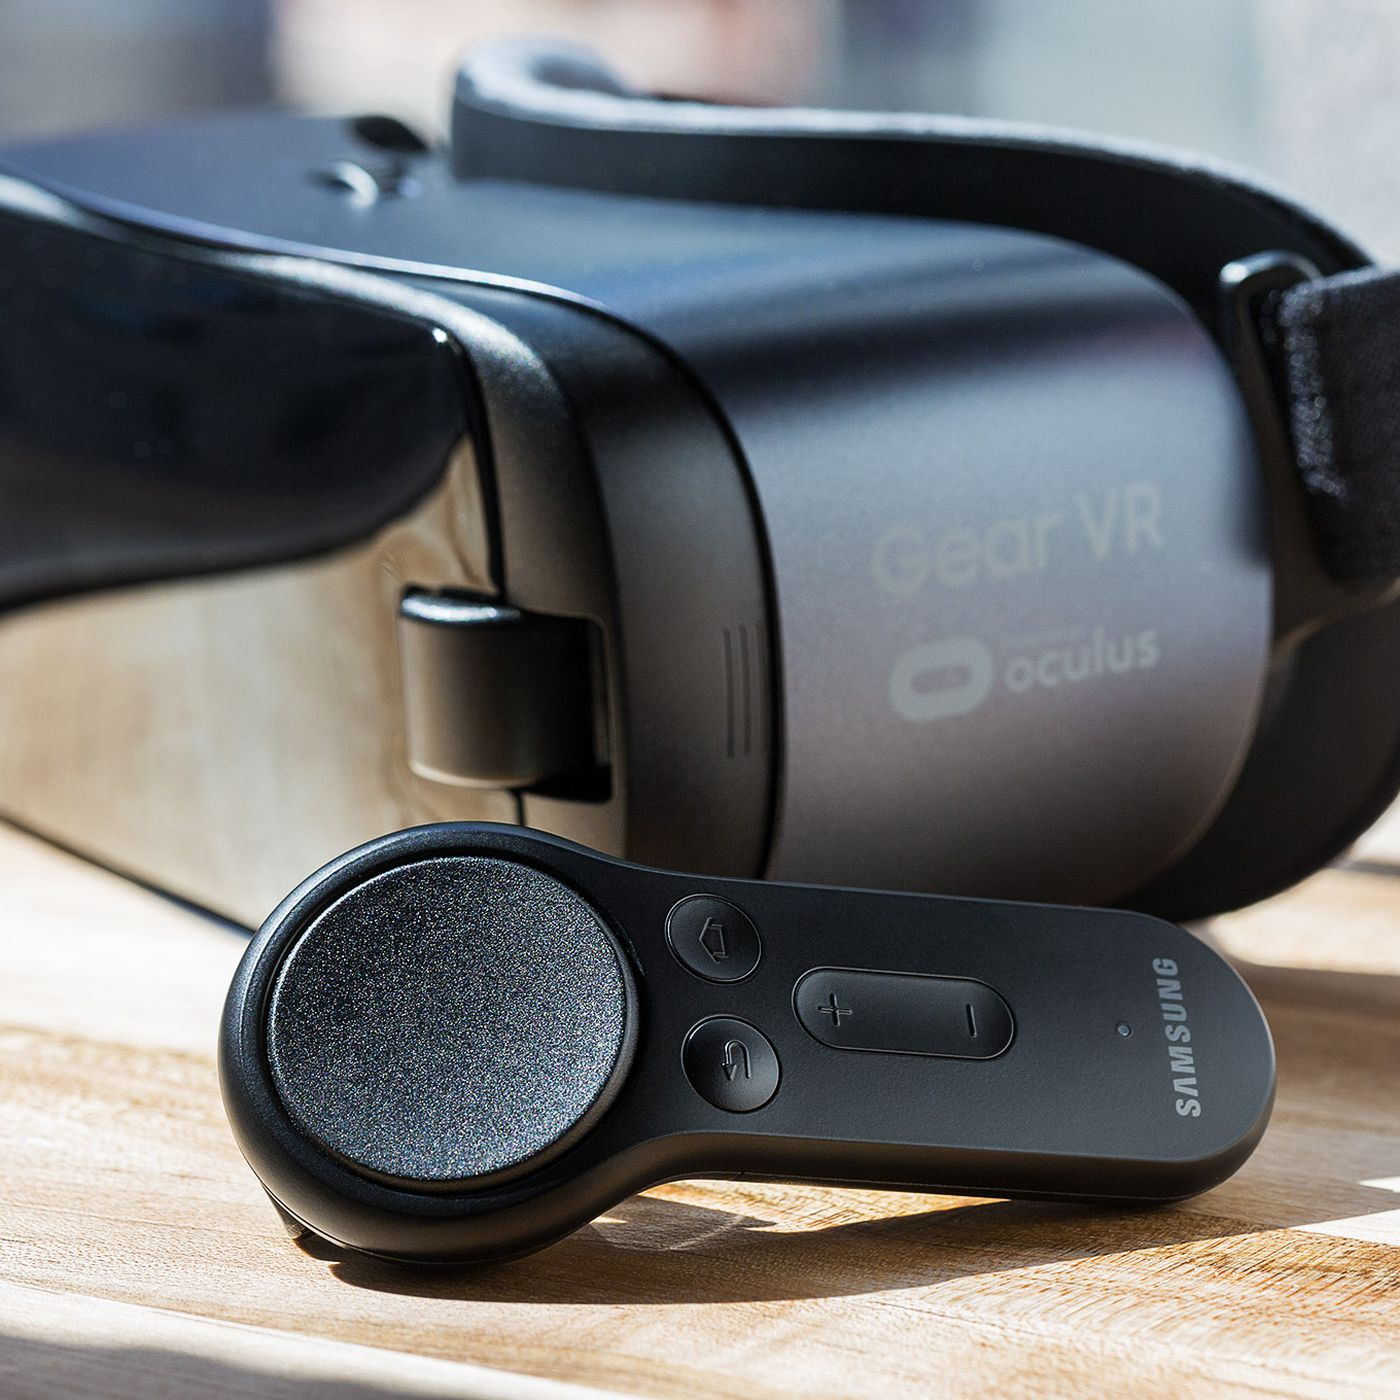 The Gear VR's new controller is a big step forward — but